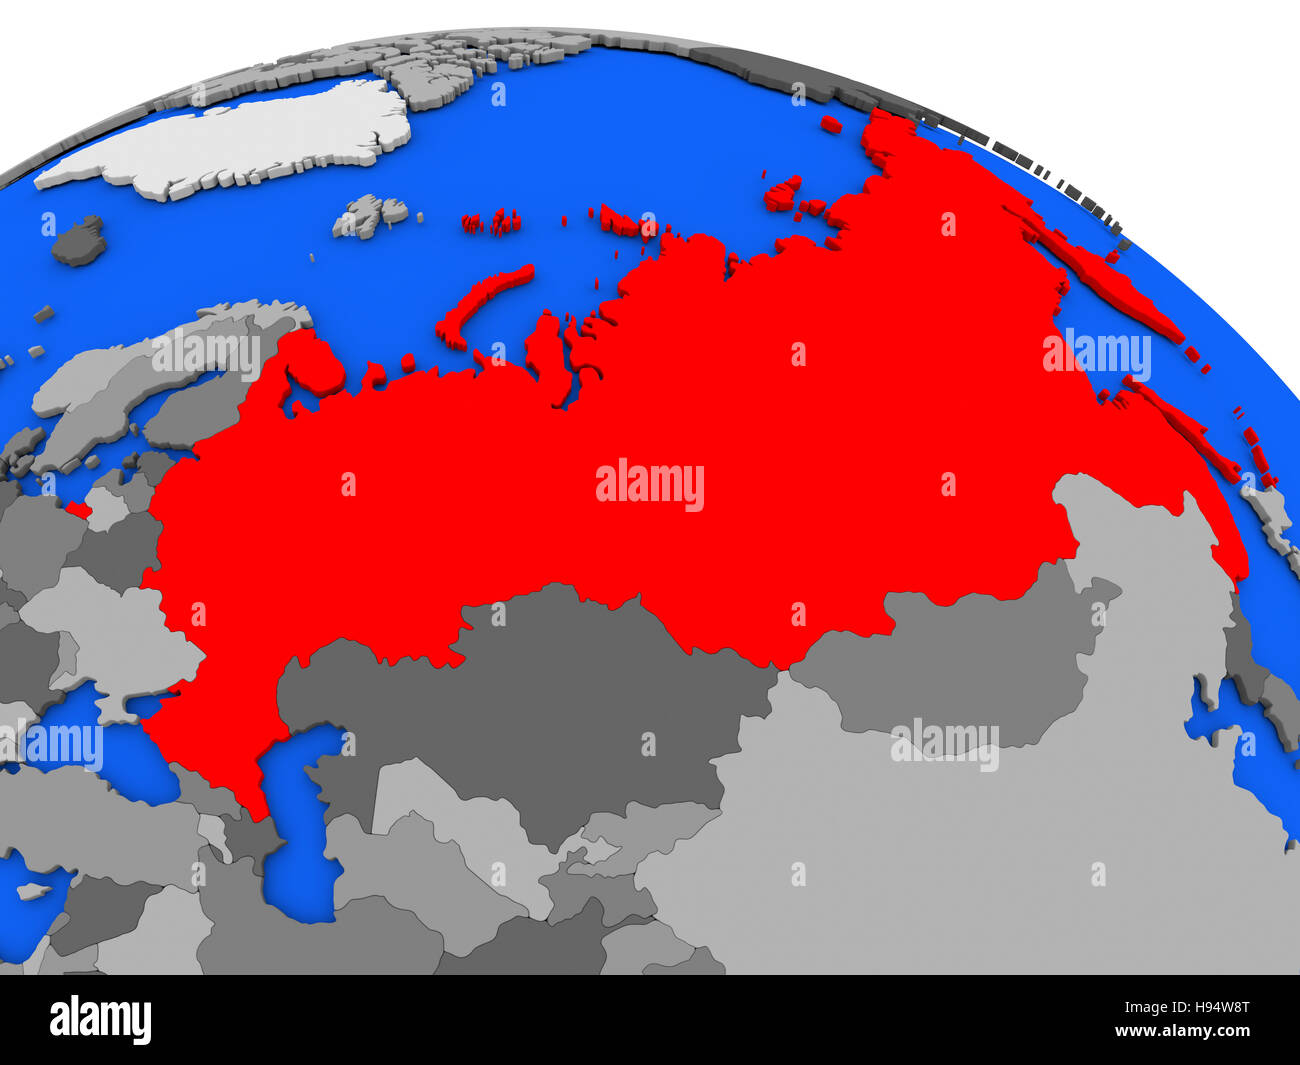 Map of russia highlighted in red on a globe 3d illustration stock map of russia highlighted in red on a globe 3d illustration gumiabroncs Images